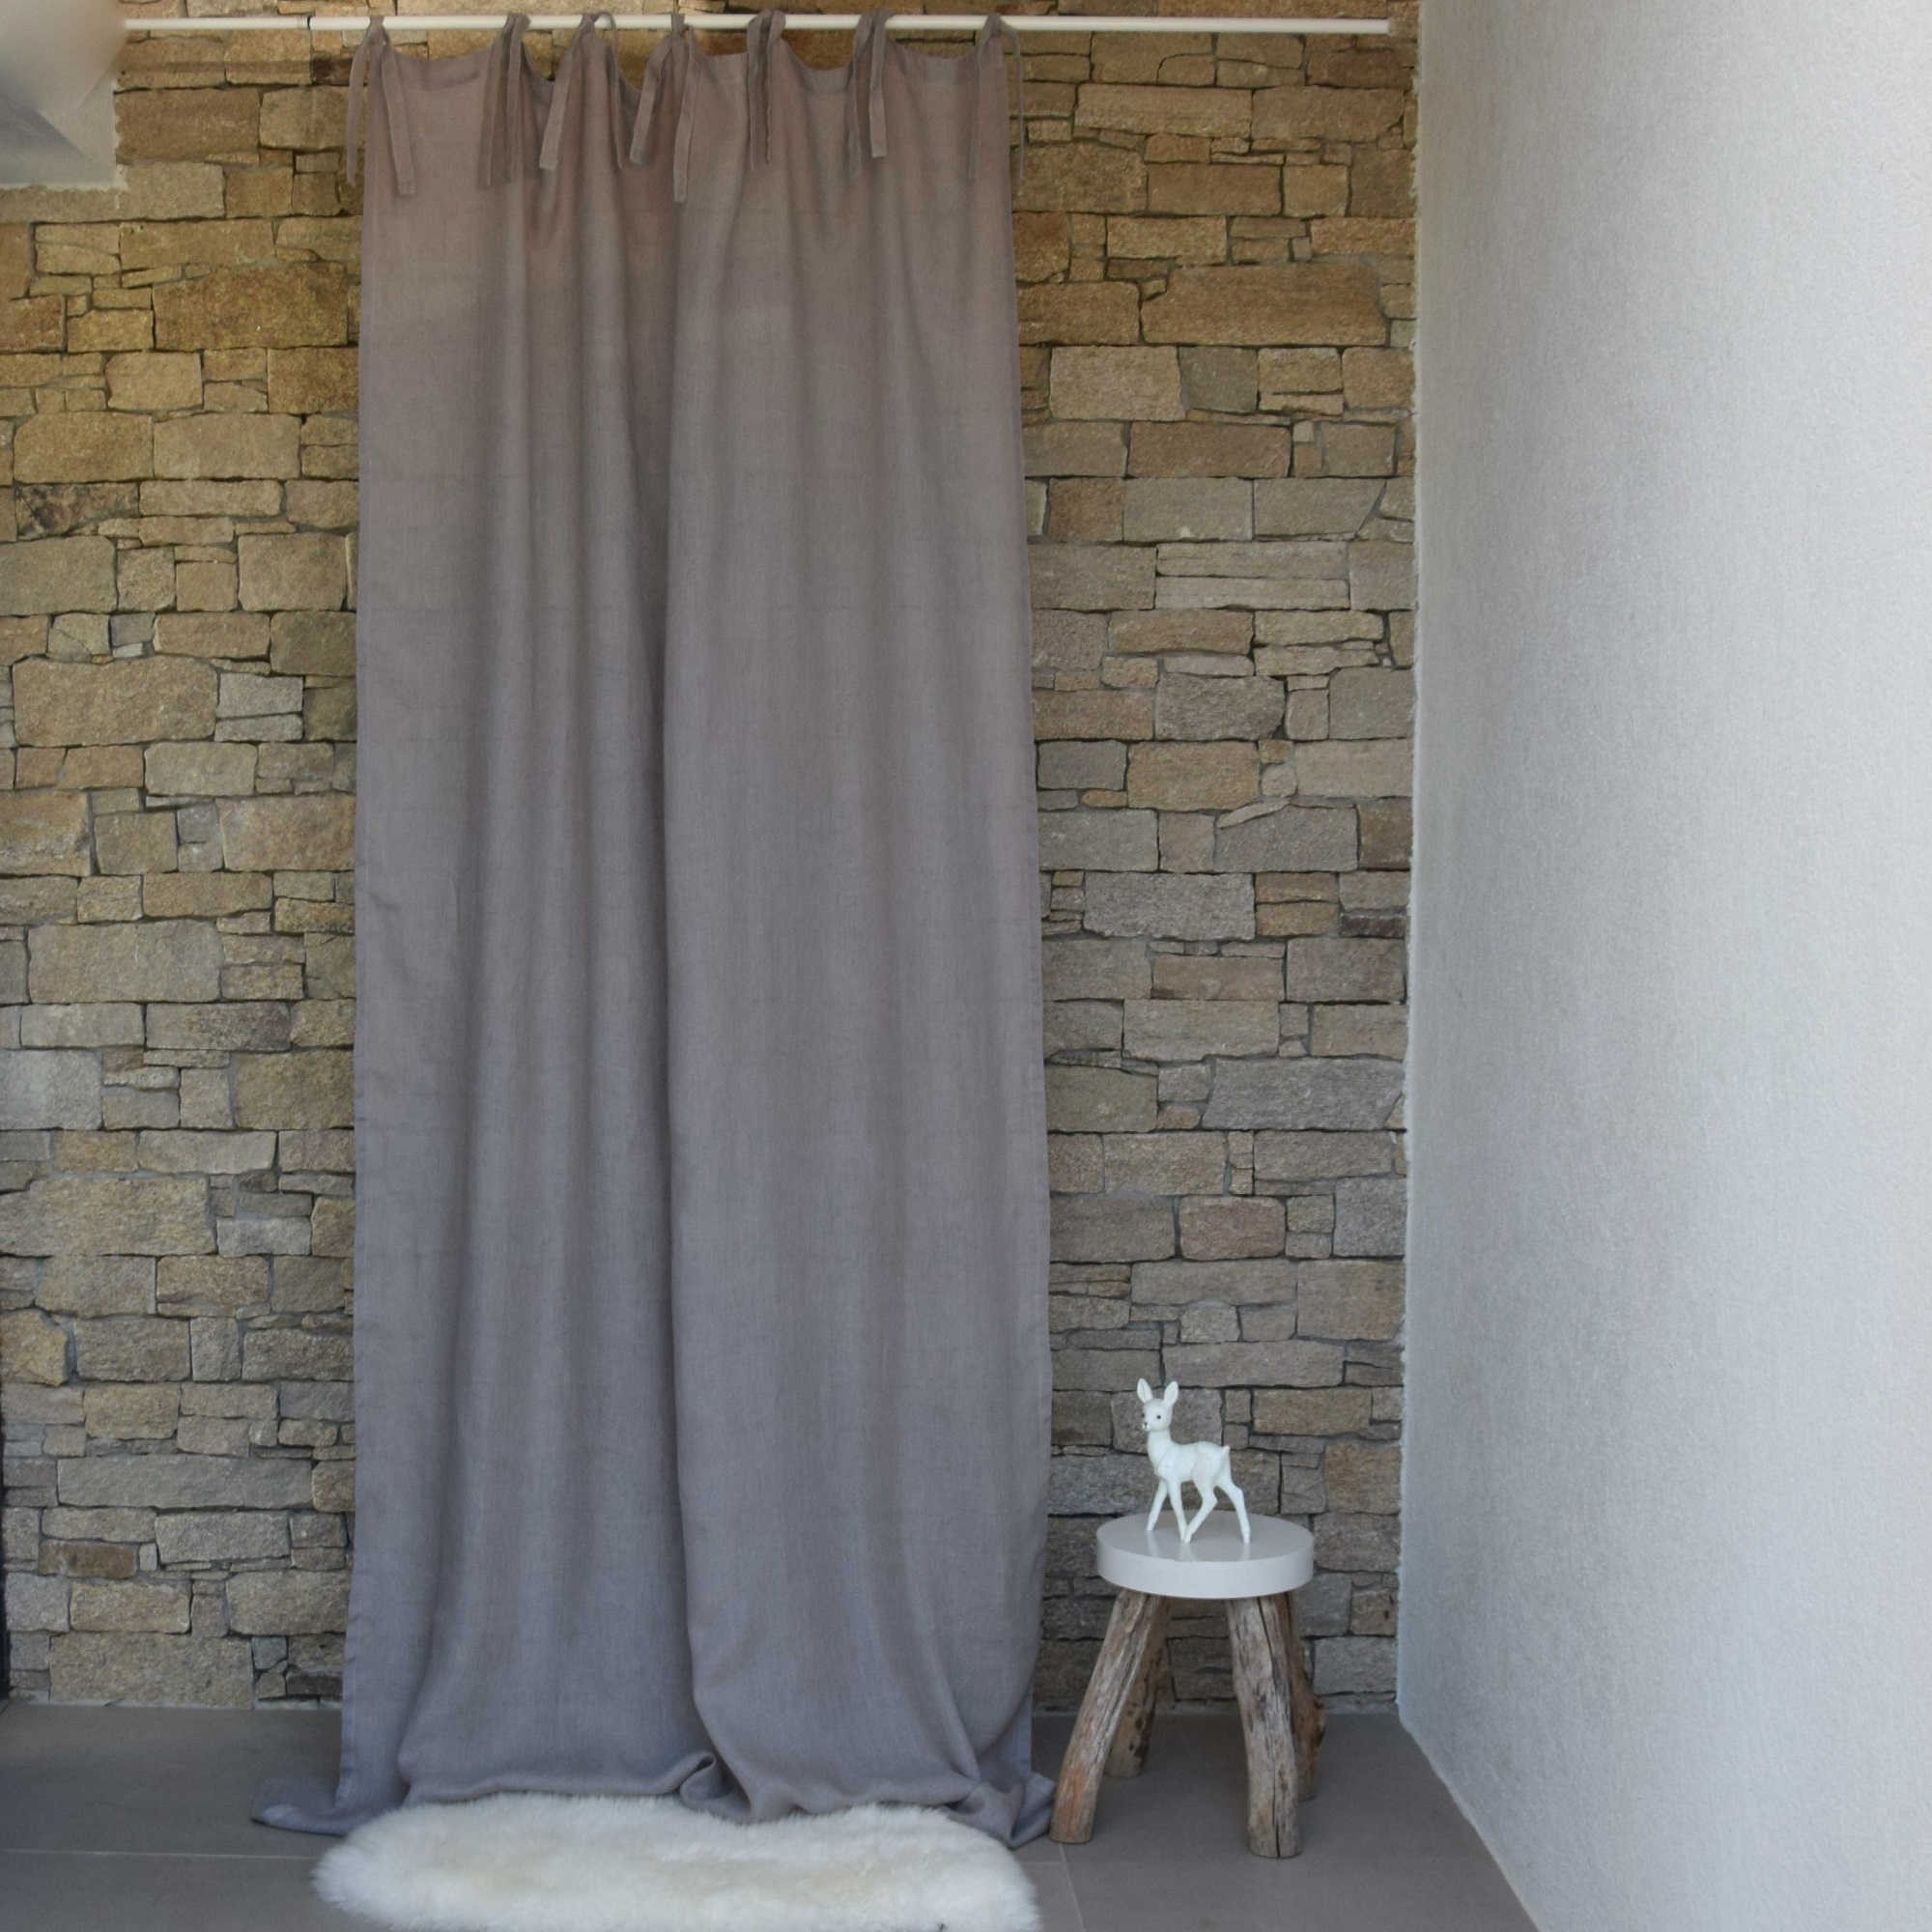 Linen Curtains Embroidered Curtains White Curtains Maison Dt With Linen Gauze Curtains (View 7 of 15)